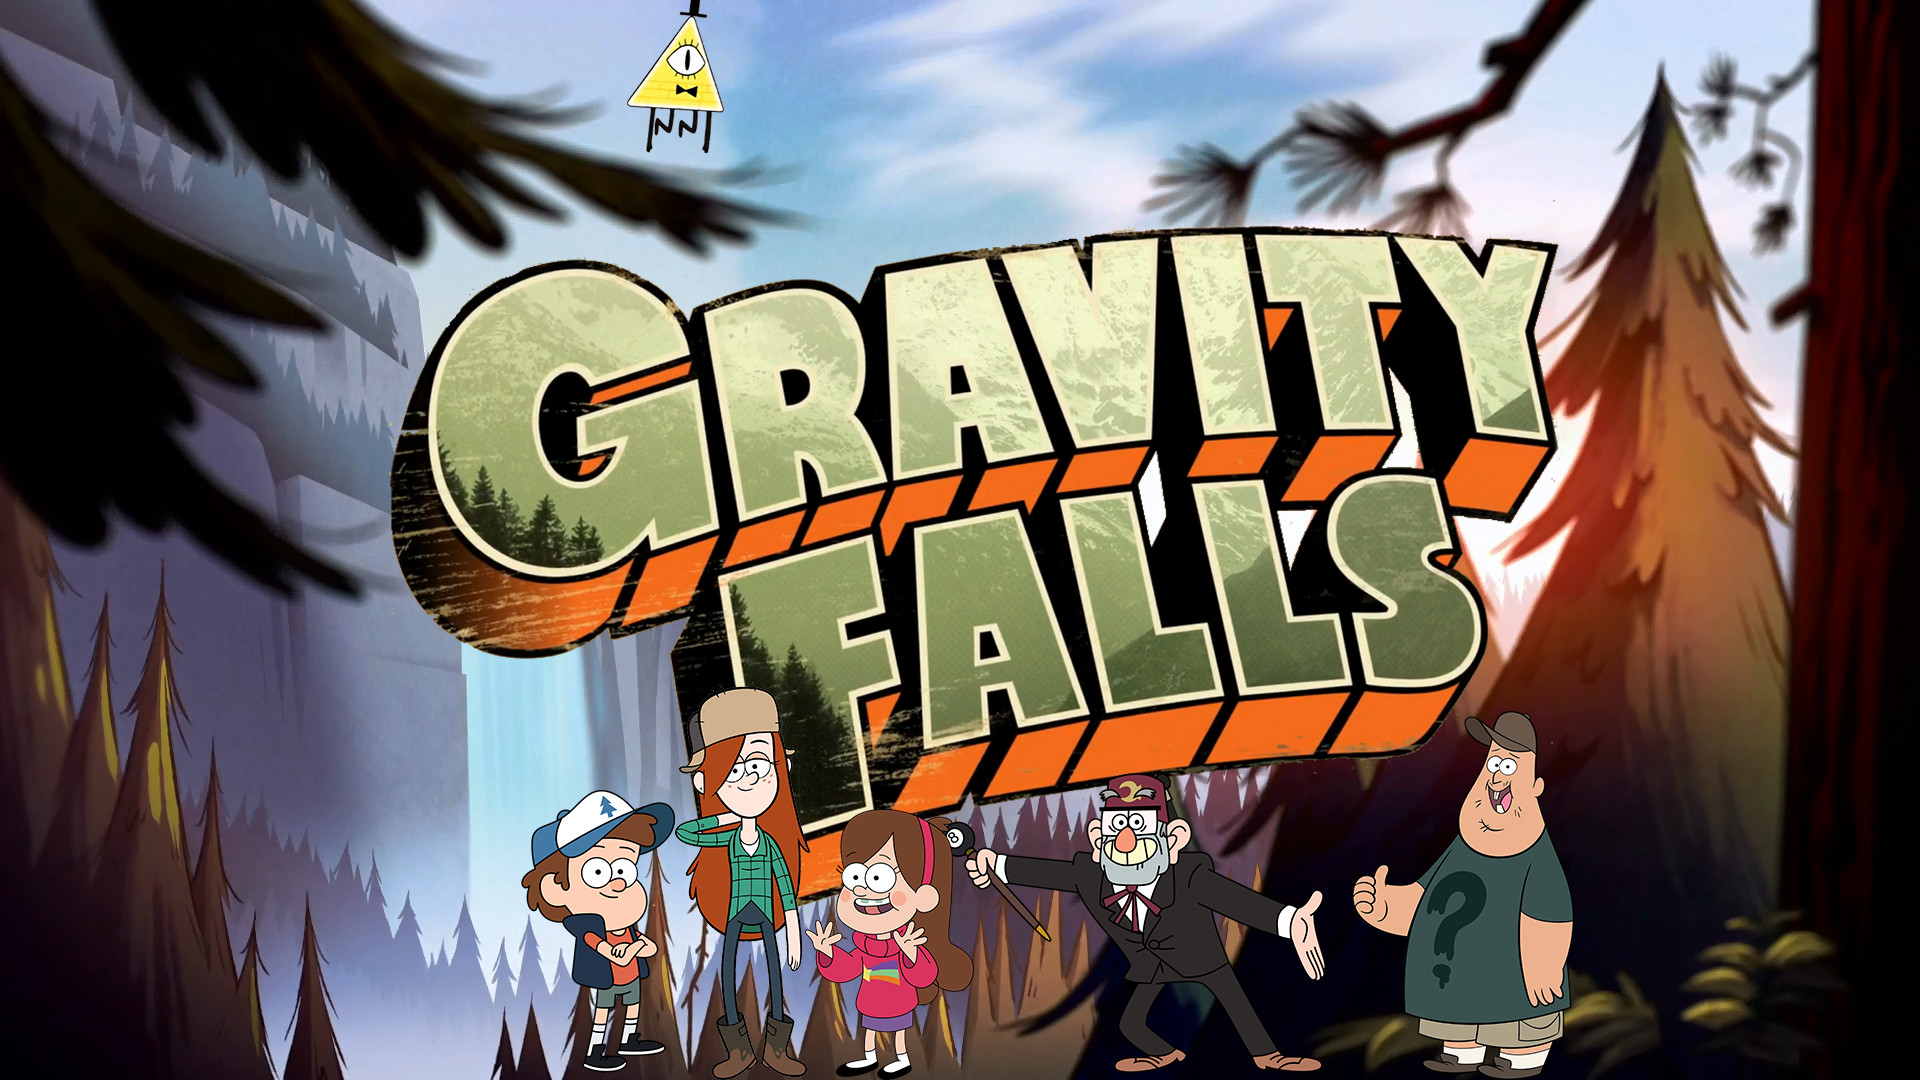 1920x1080 Gravity Falls Wallpaper by moechtegernkuenstler Gravity Falls Wallpaper by  moechtegernkuenstler